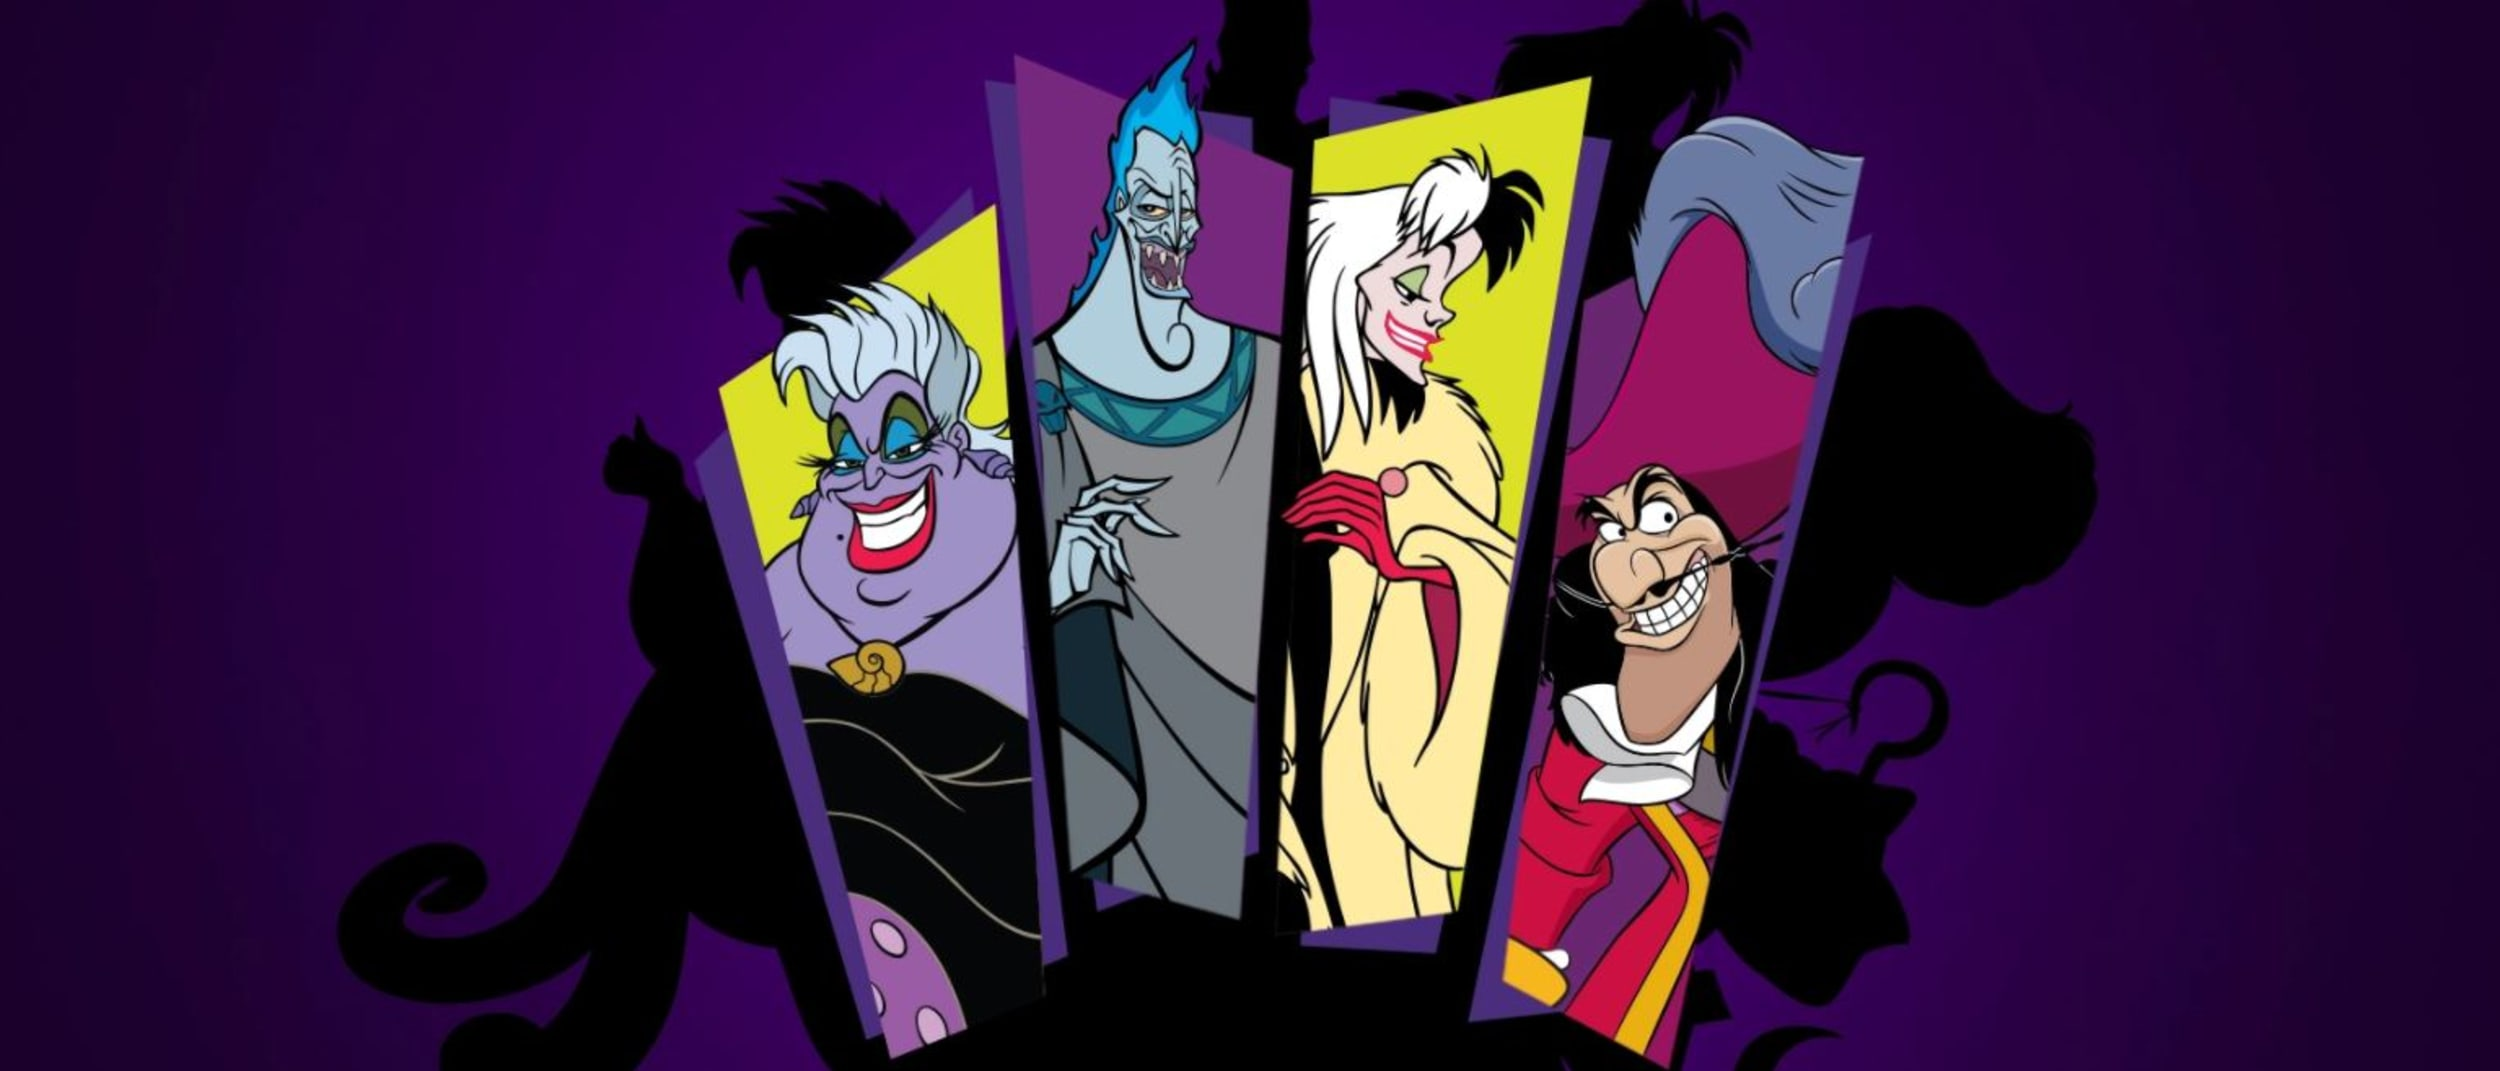 Disney Villains Film Festival at Event Cinemas